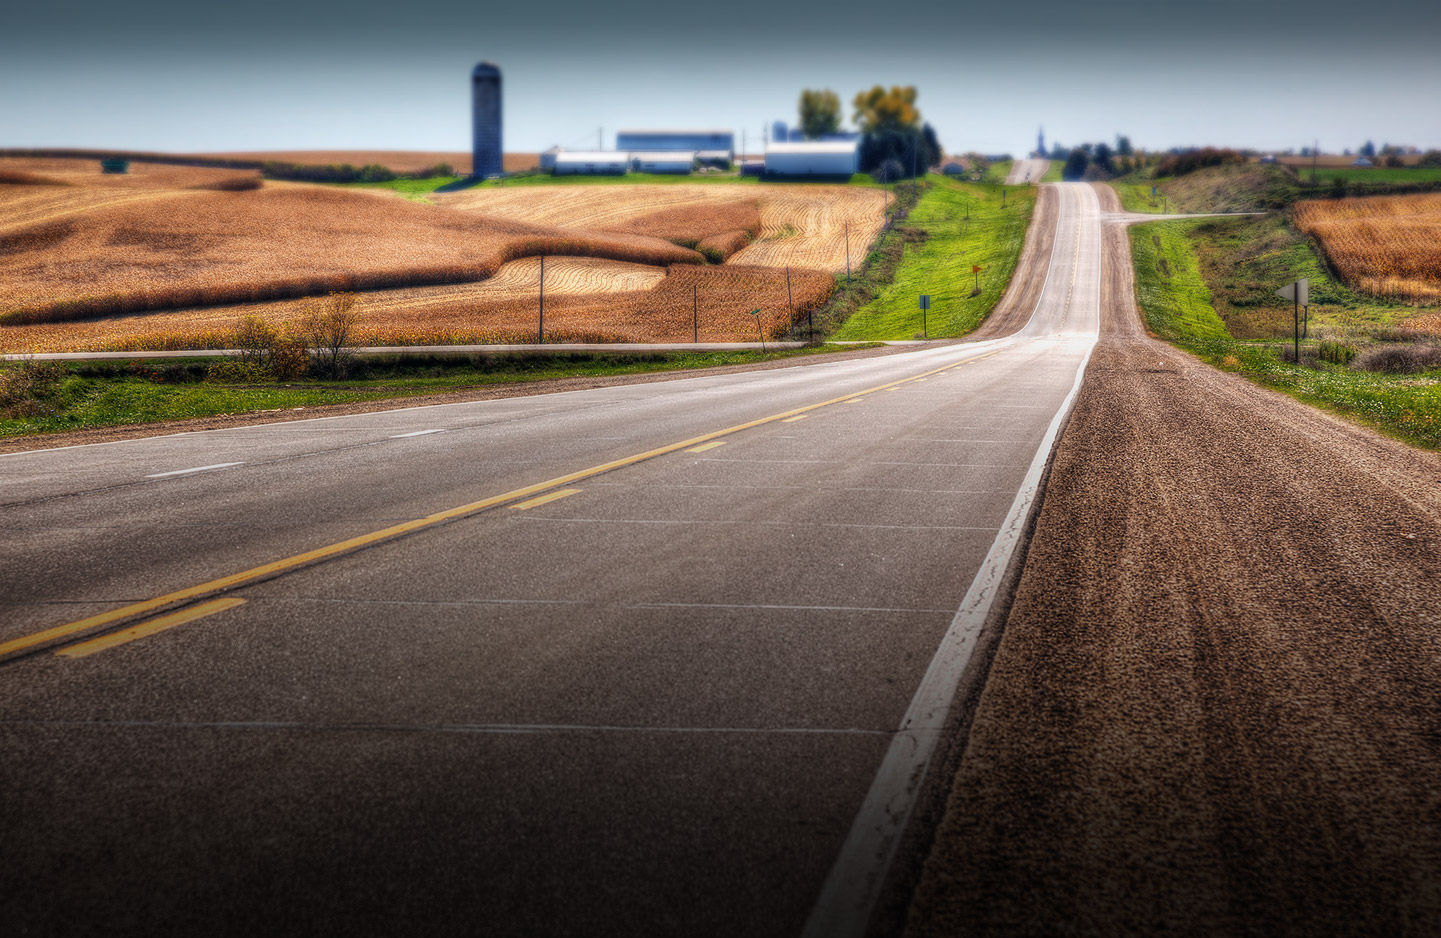 Iowa transportation background image